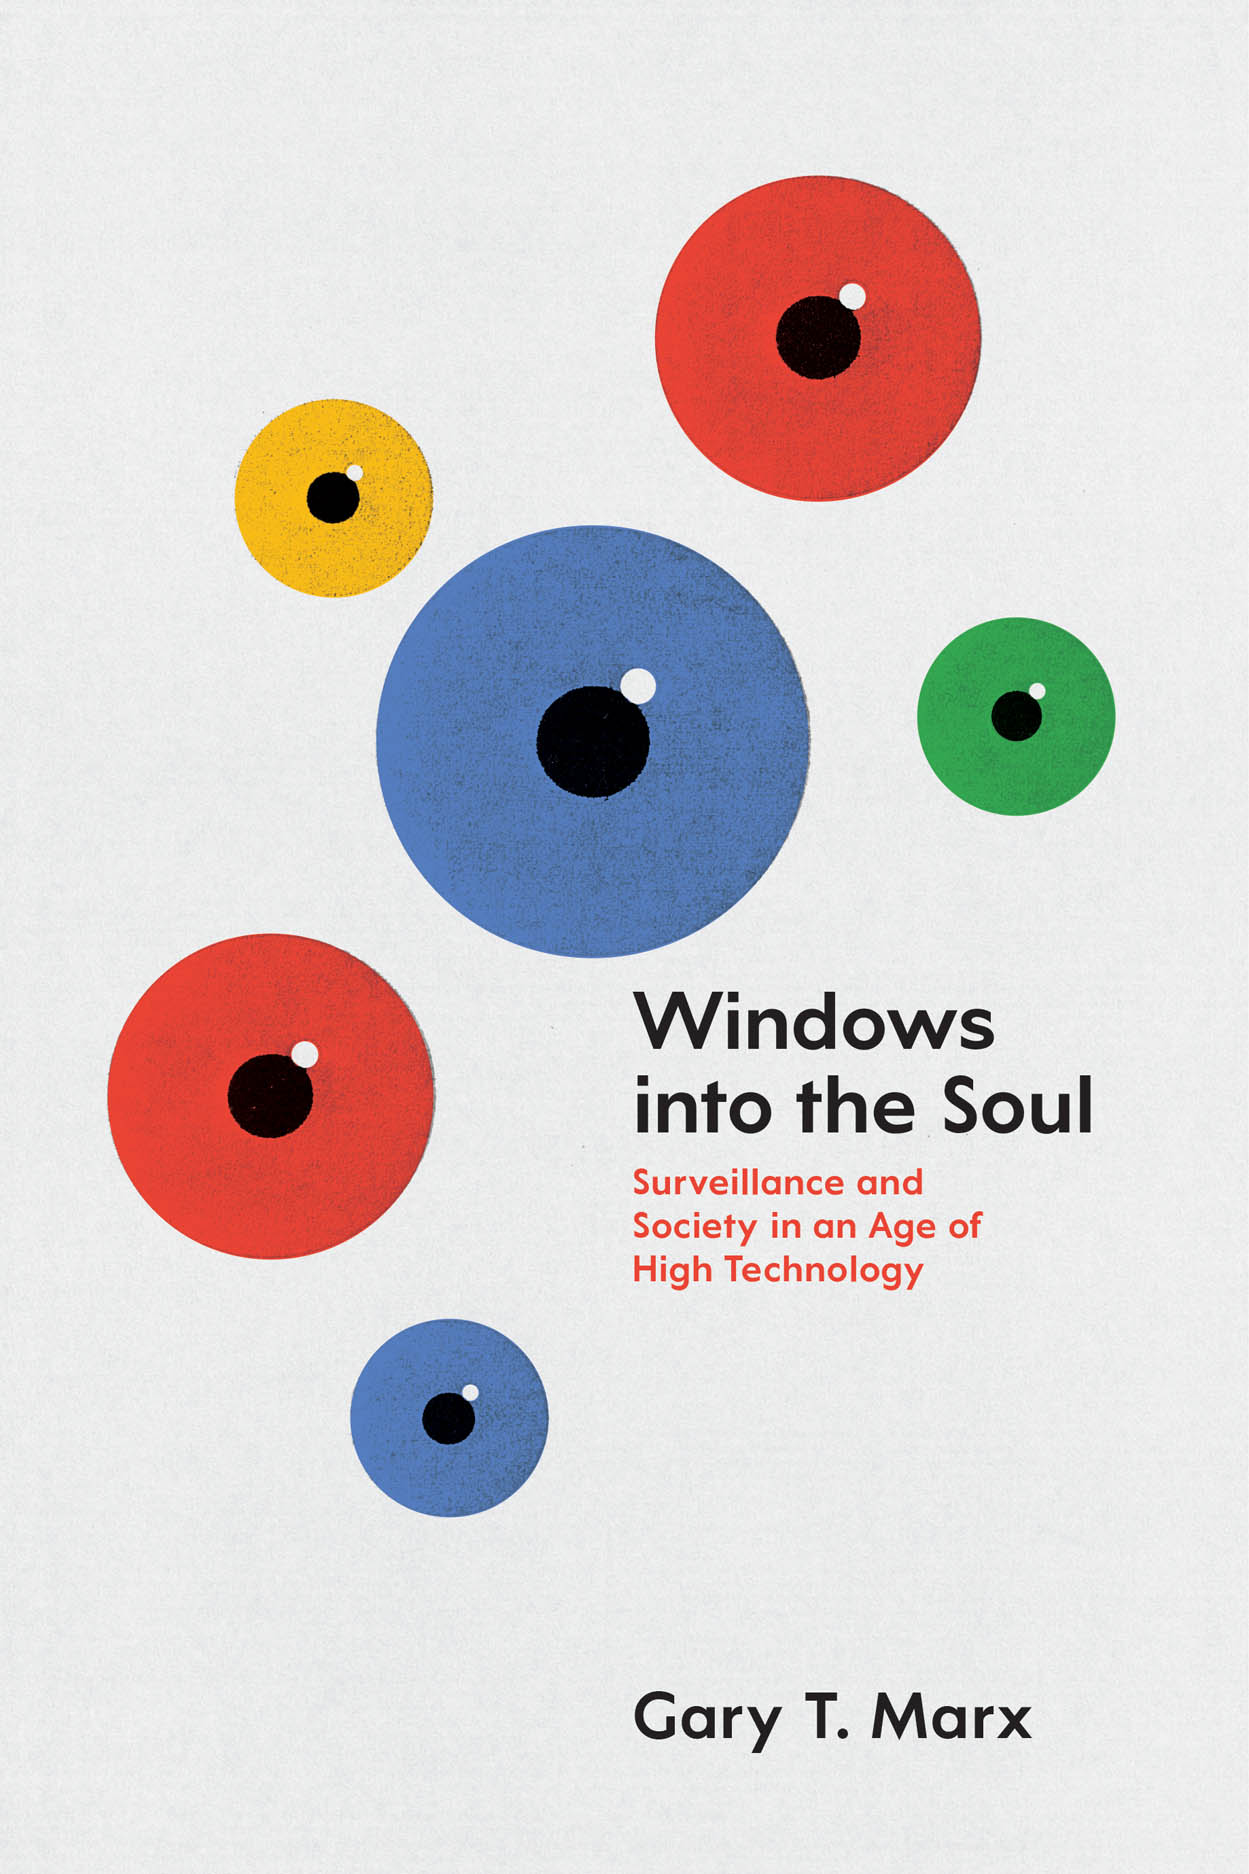 Windows into the Soul: Surveillance and Society in an Age of High Technology